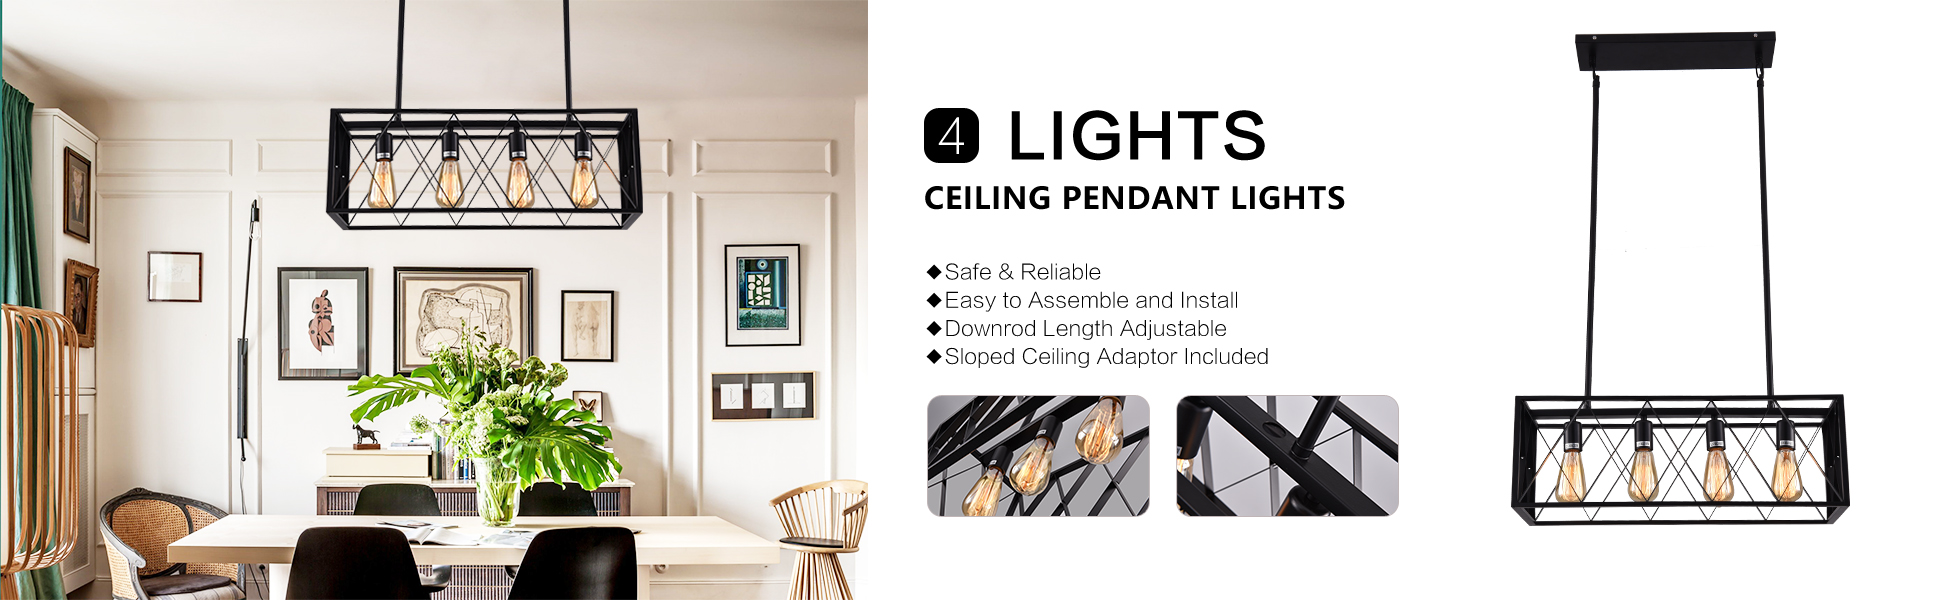 odm-dinning-room-lighting